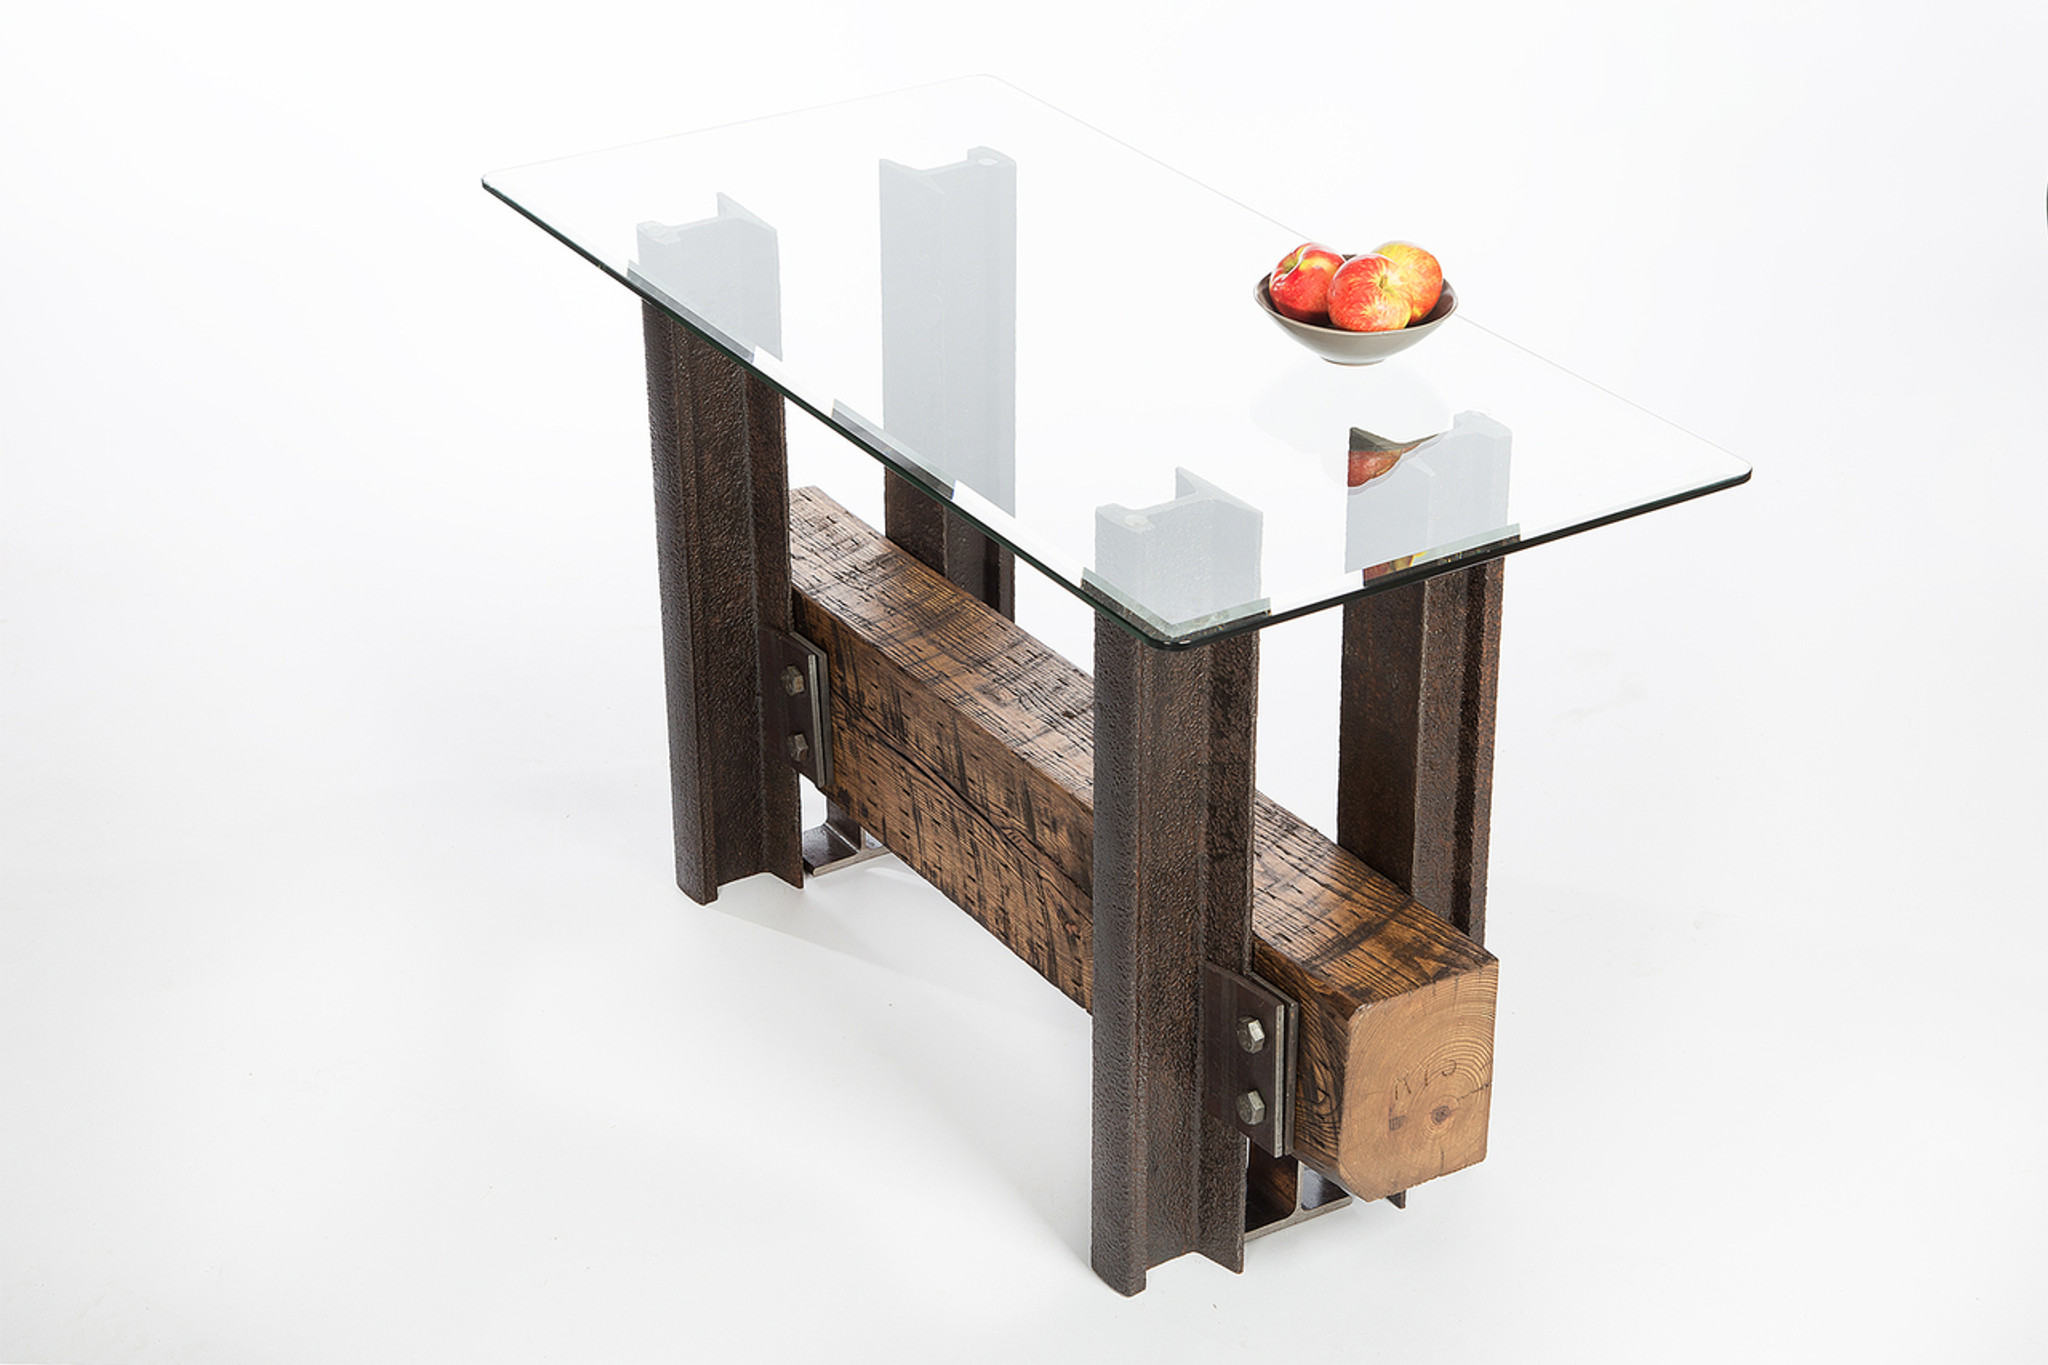 credenza console table artisan crafted from reclaimed leed-certified wood steel made in usa